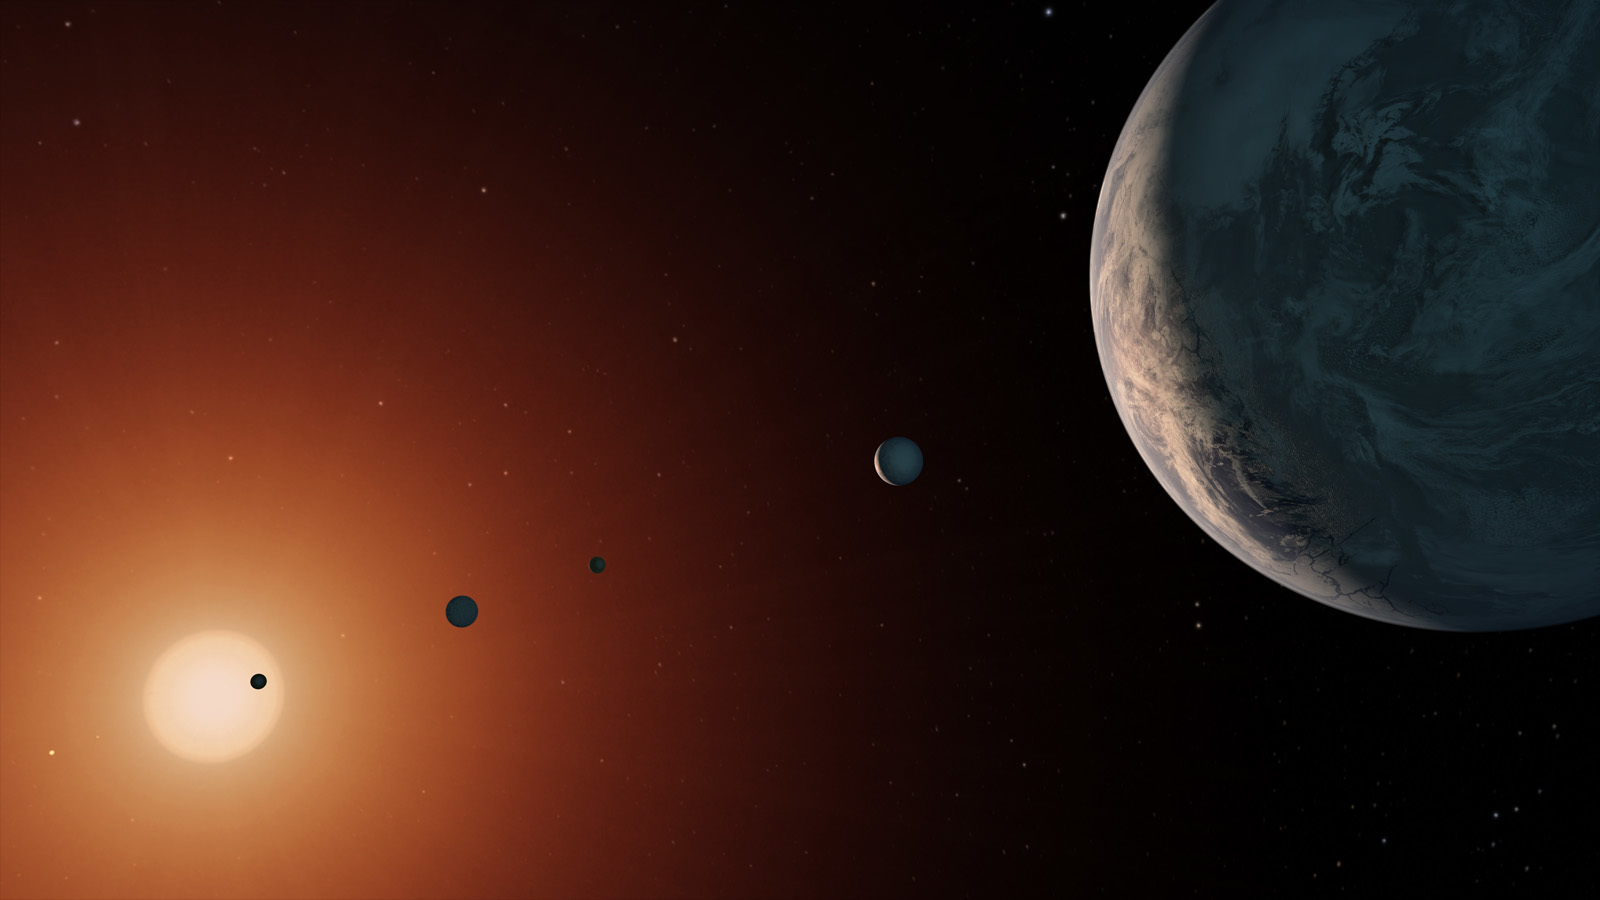 An artist's rendition of the TRAPPIST-1 system, in which seven Earth-like exoplanets orbit an ultra-cool red dwarf star at the center.